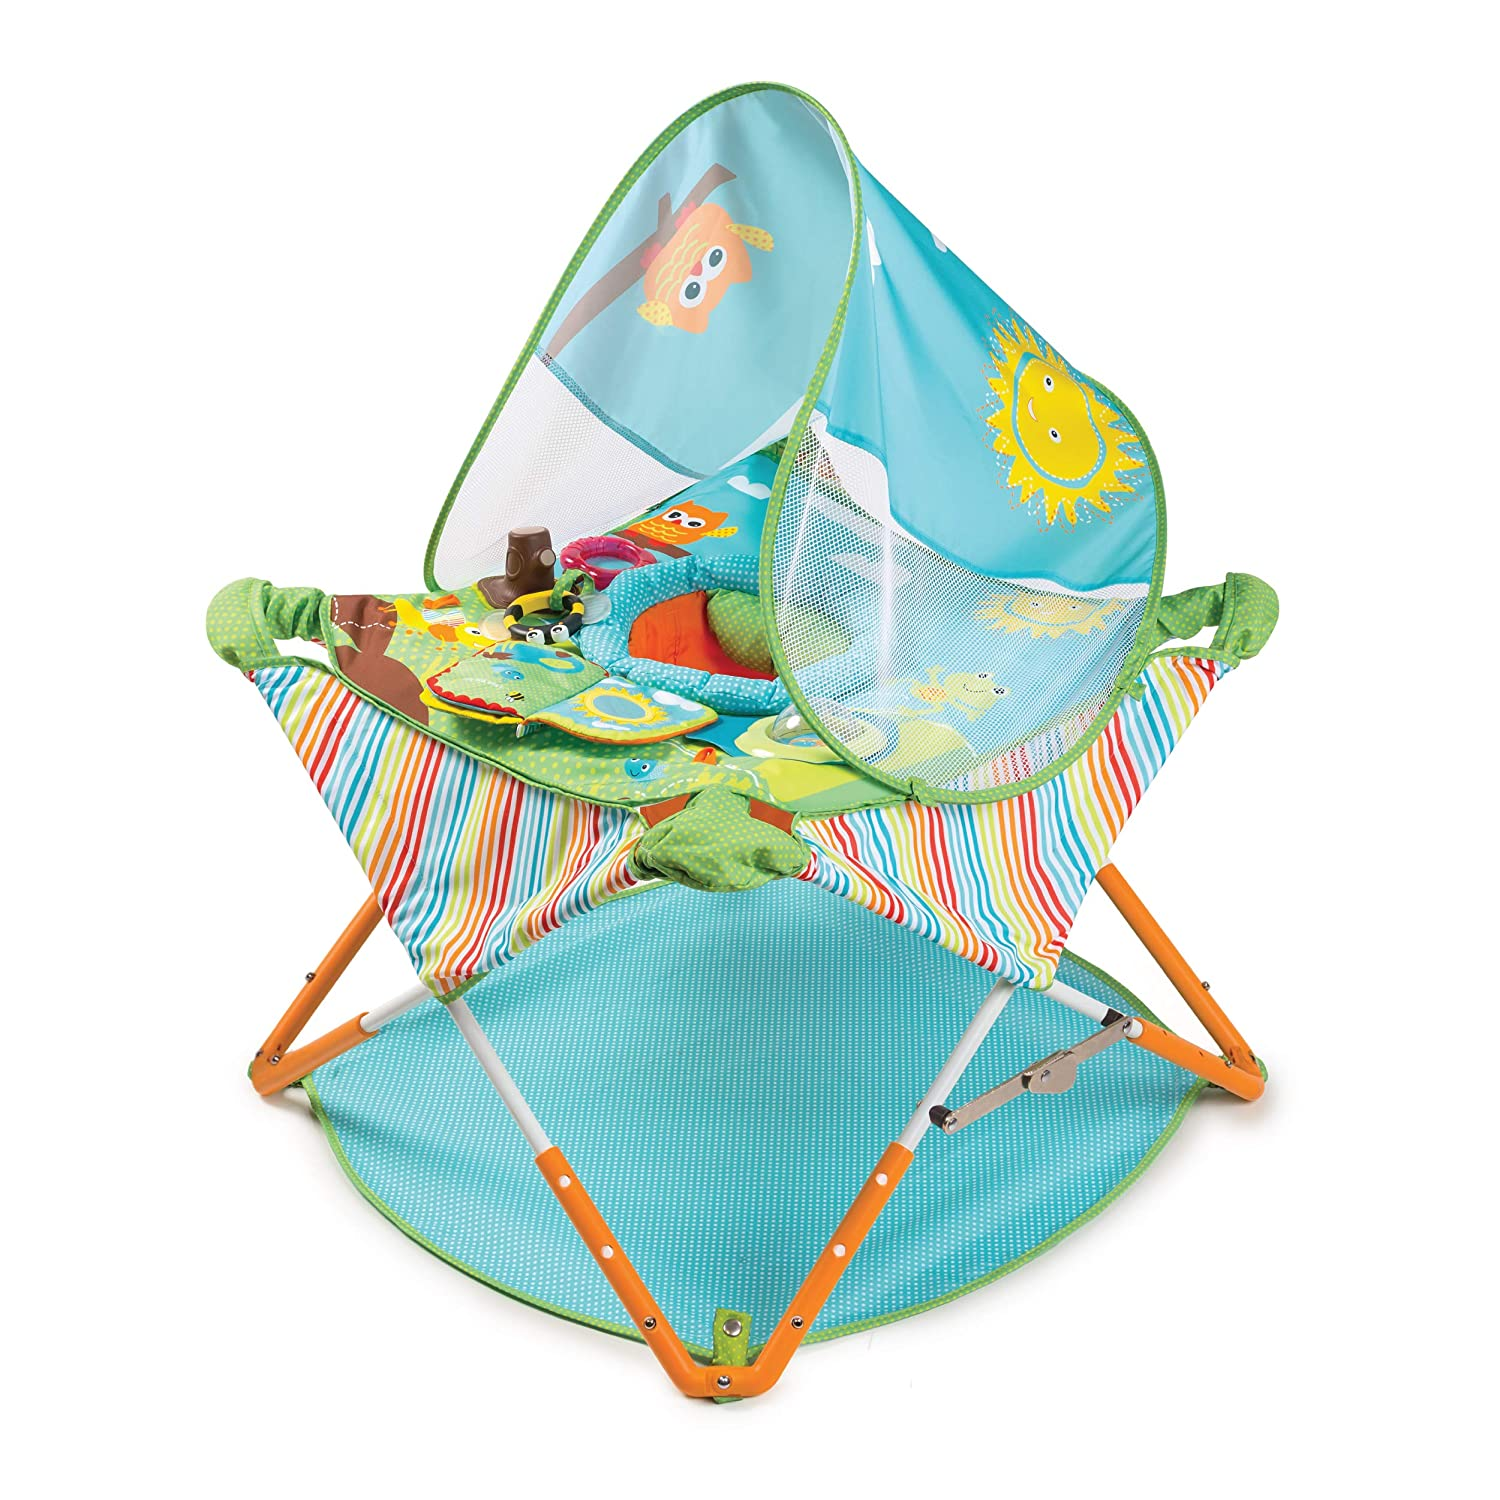 Best Baby Jumper for Small Space